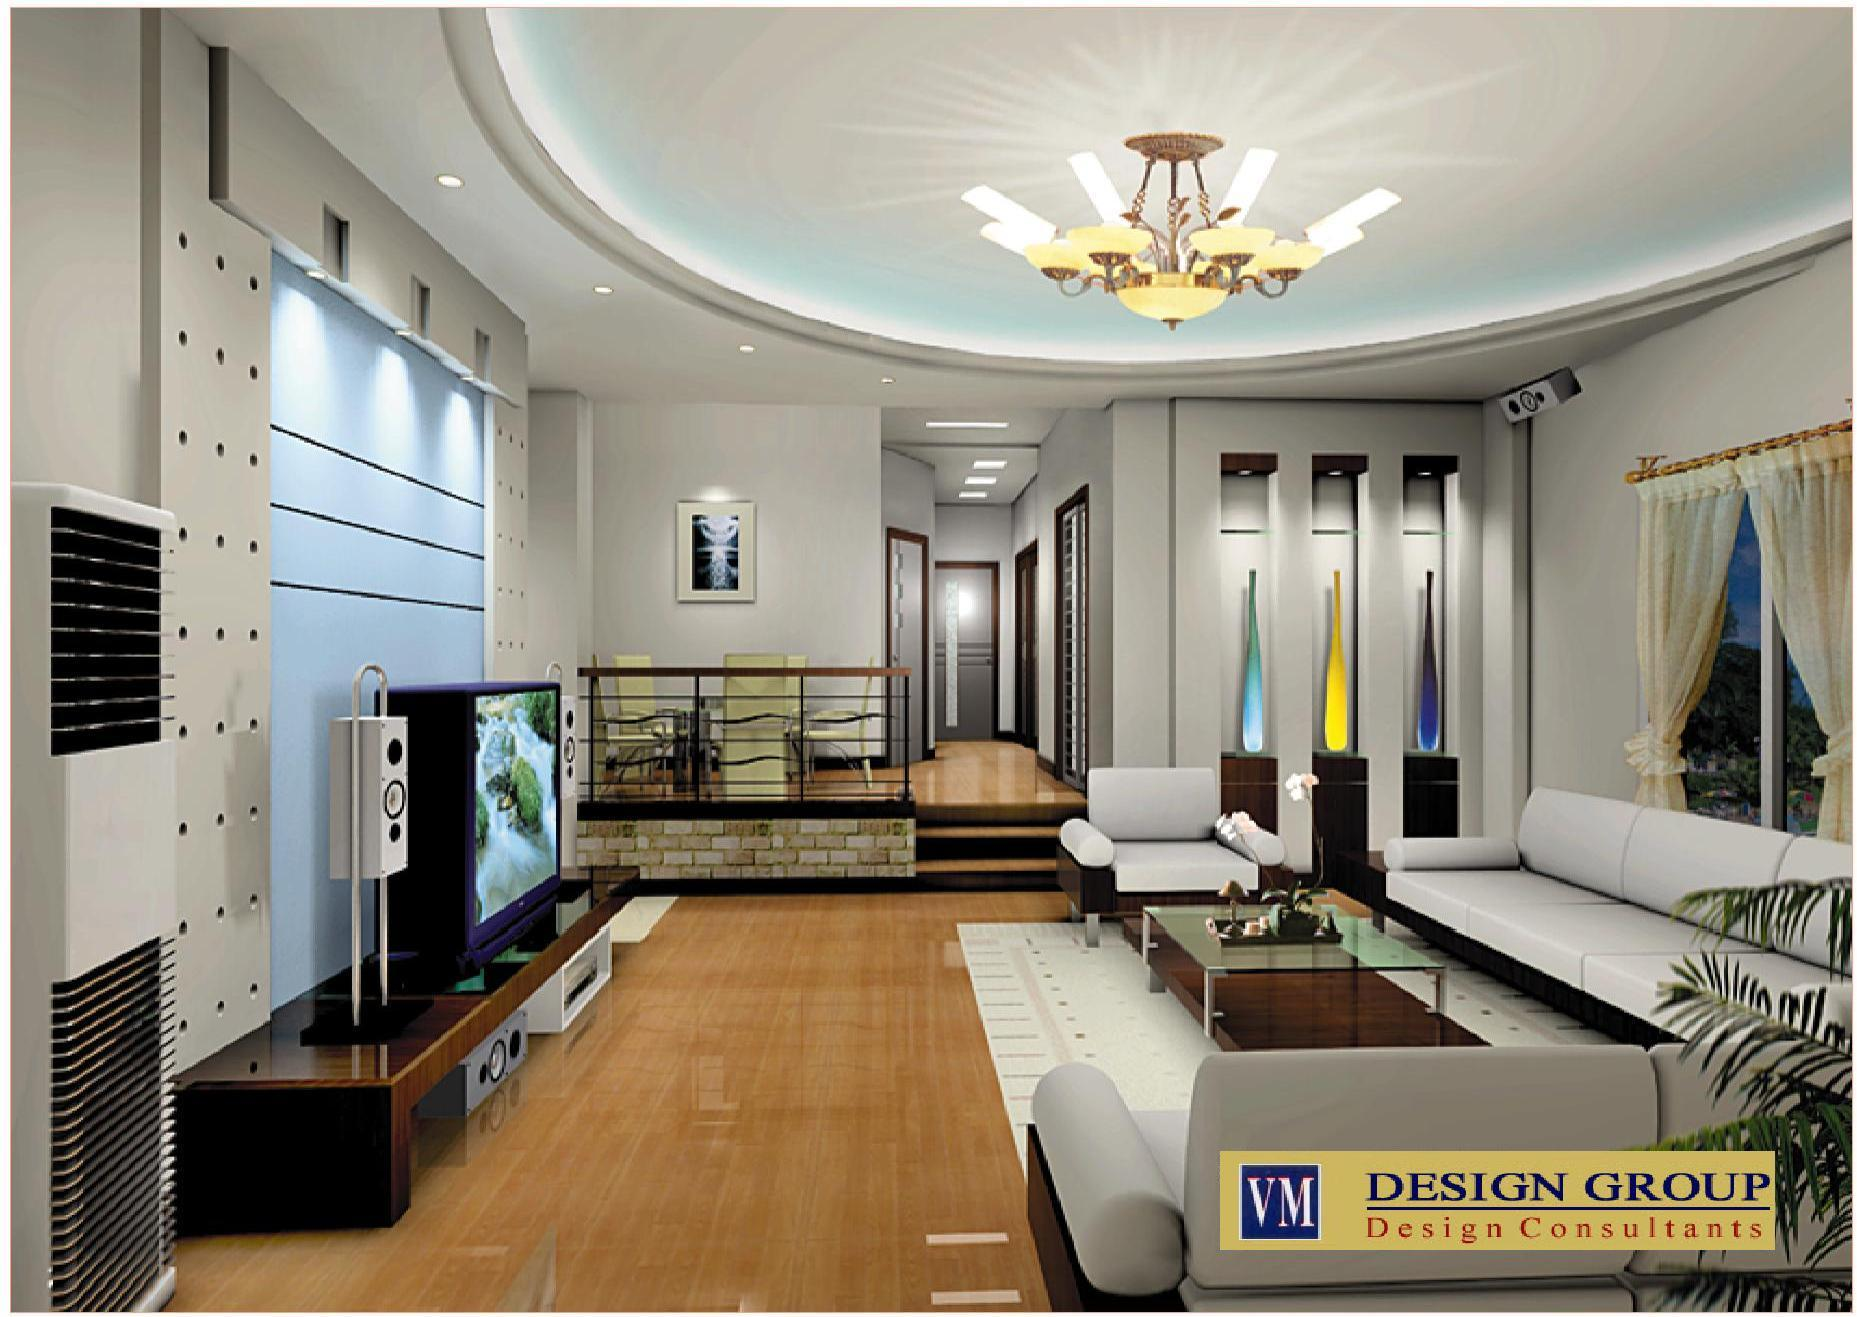 Interior Design Delhi11857x1317 254 KB BACHELOR OF INTERIOR DESIGN